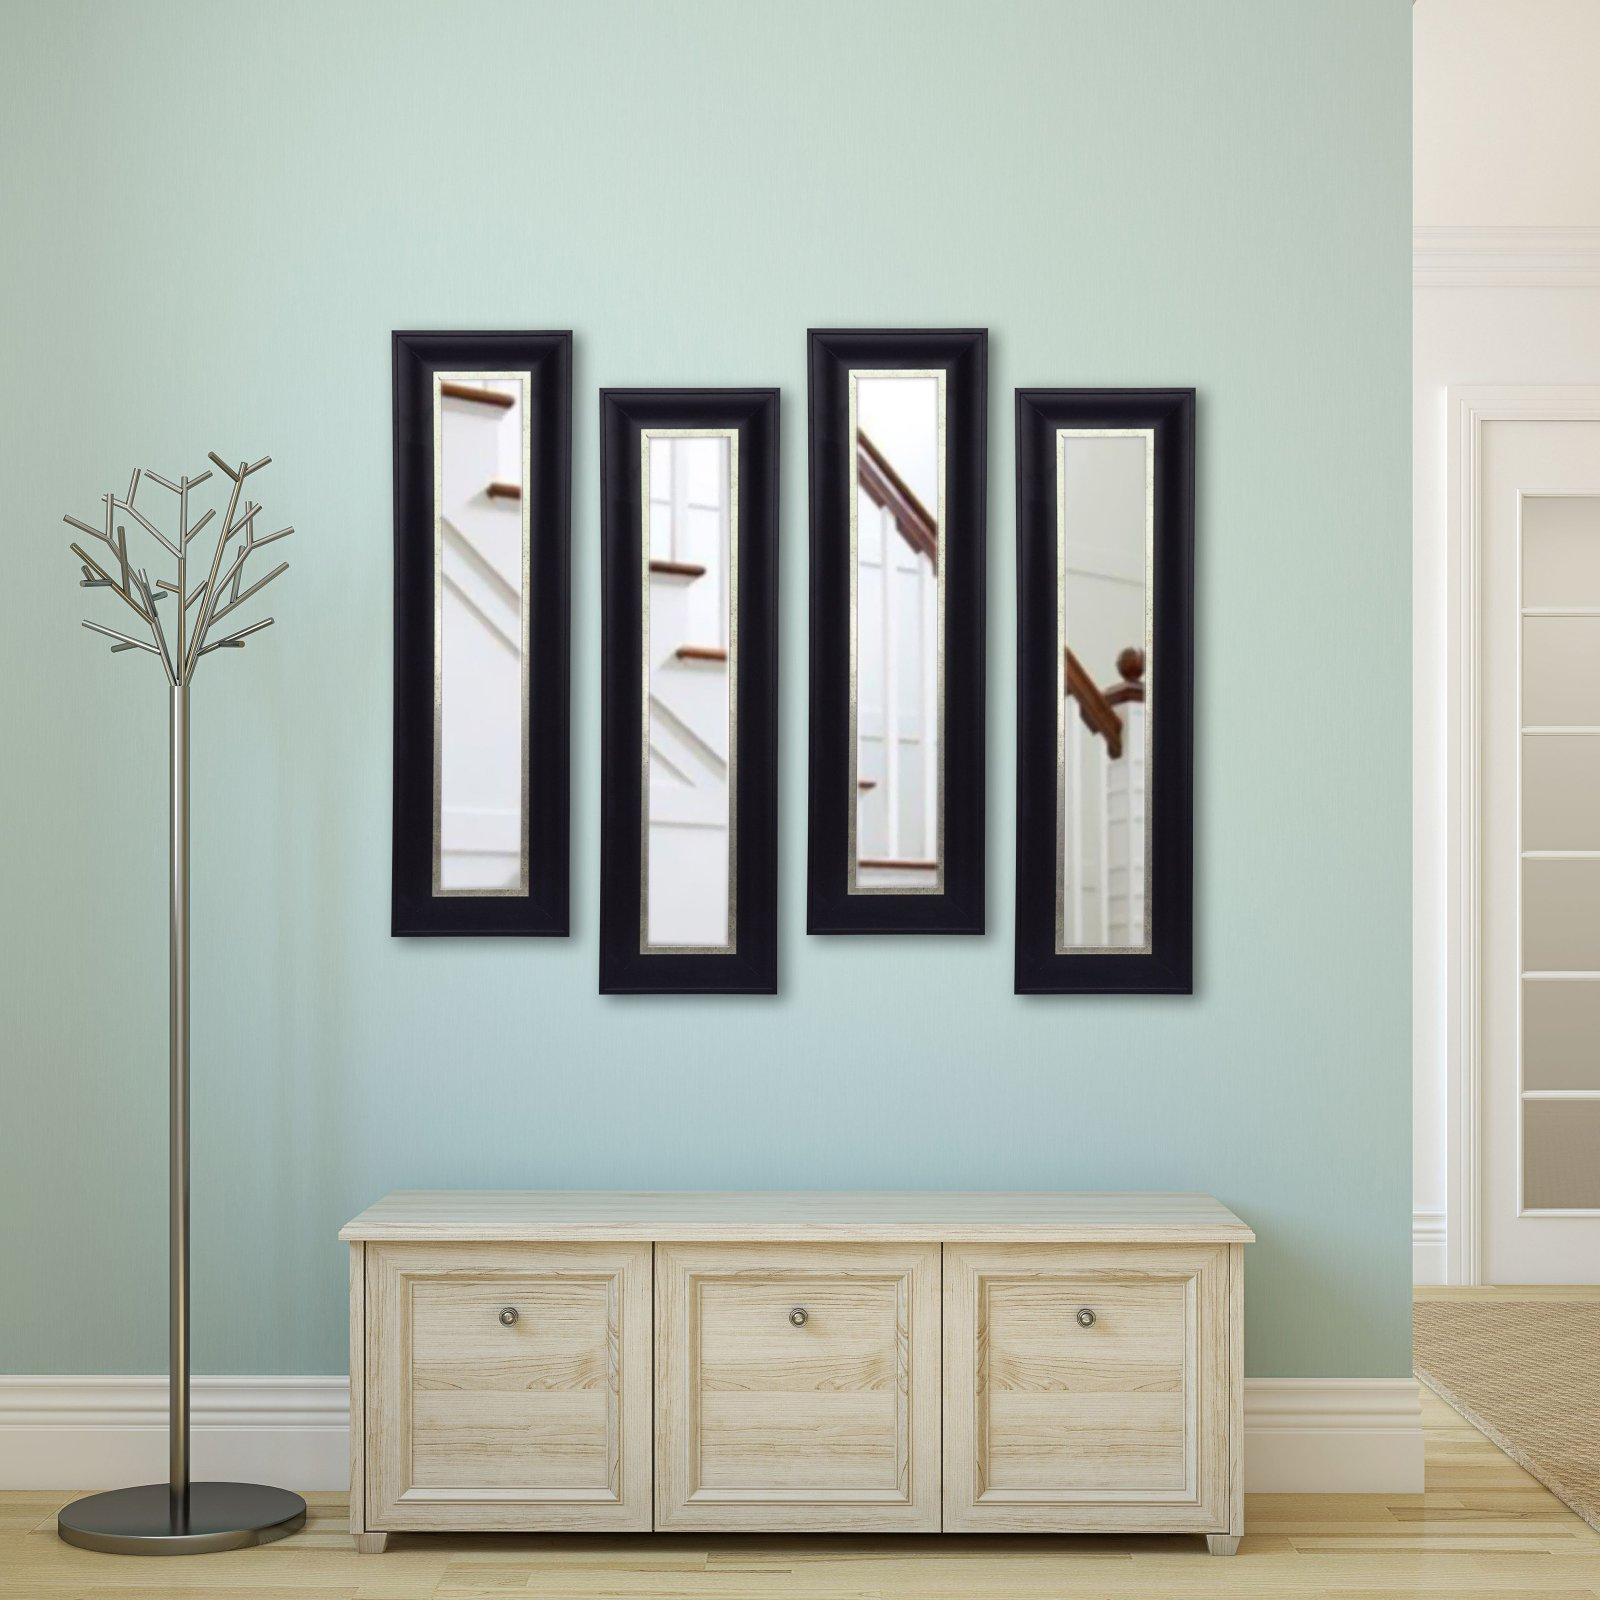 Rayne Mirrors Molly Dawn Grand Wall Mirror